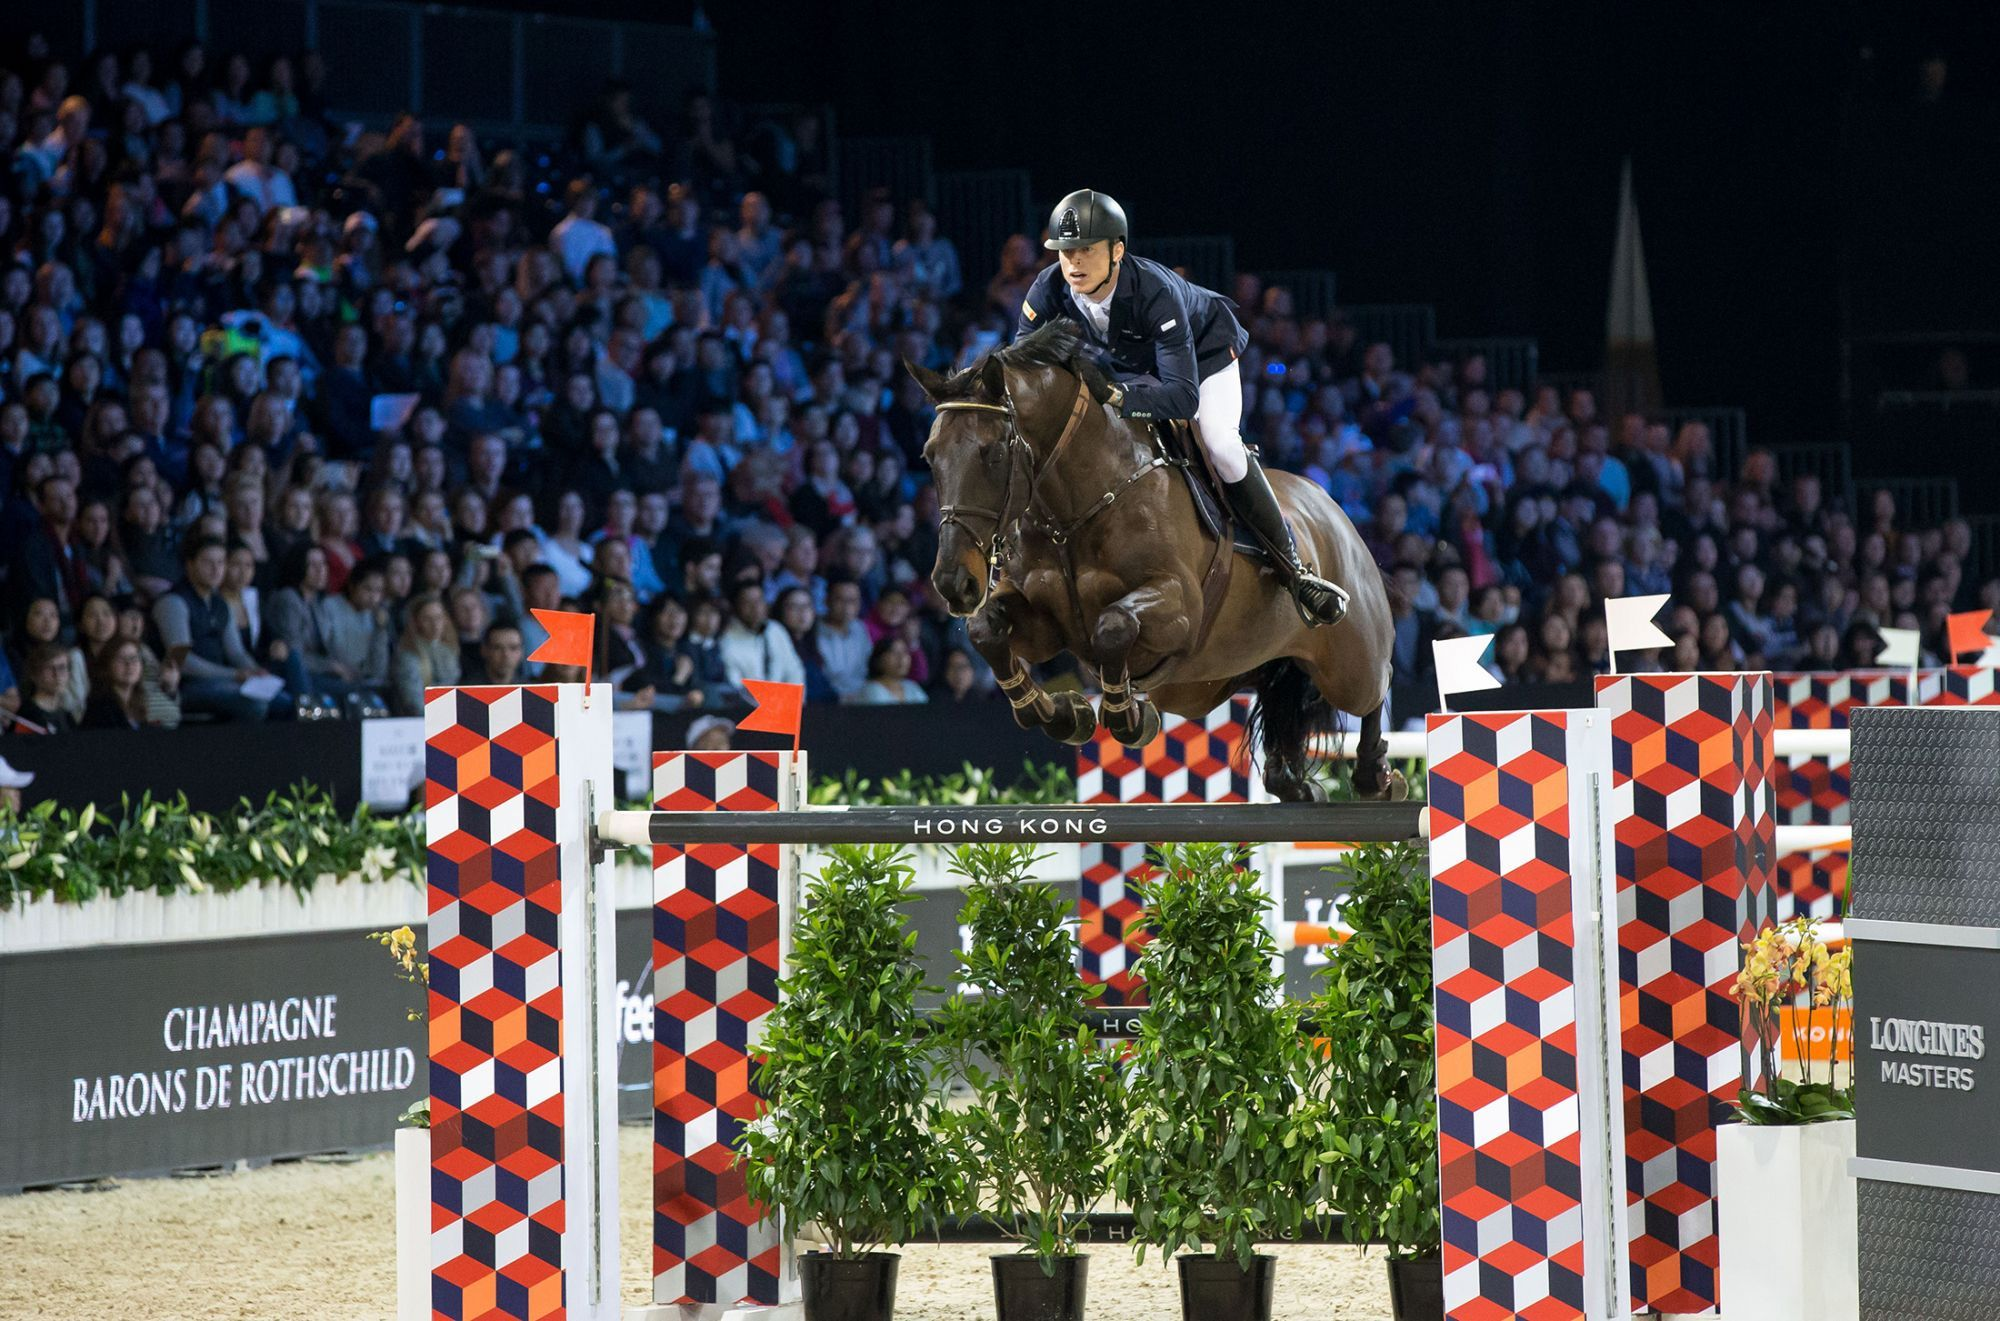 5 Events You Can't Miss At The Longines Masters Of Hong Kong 2019